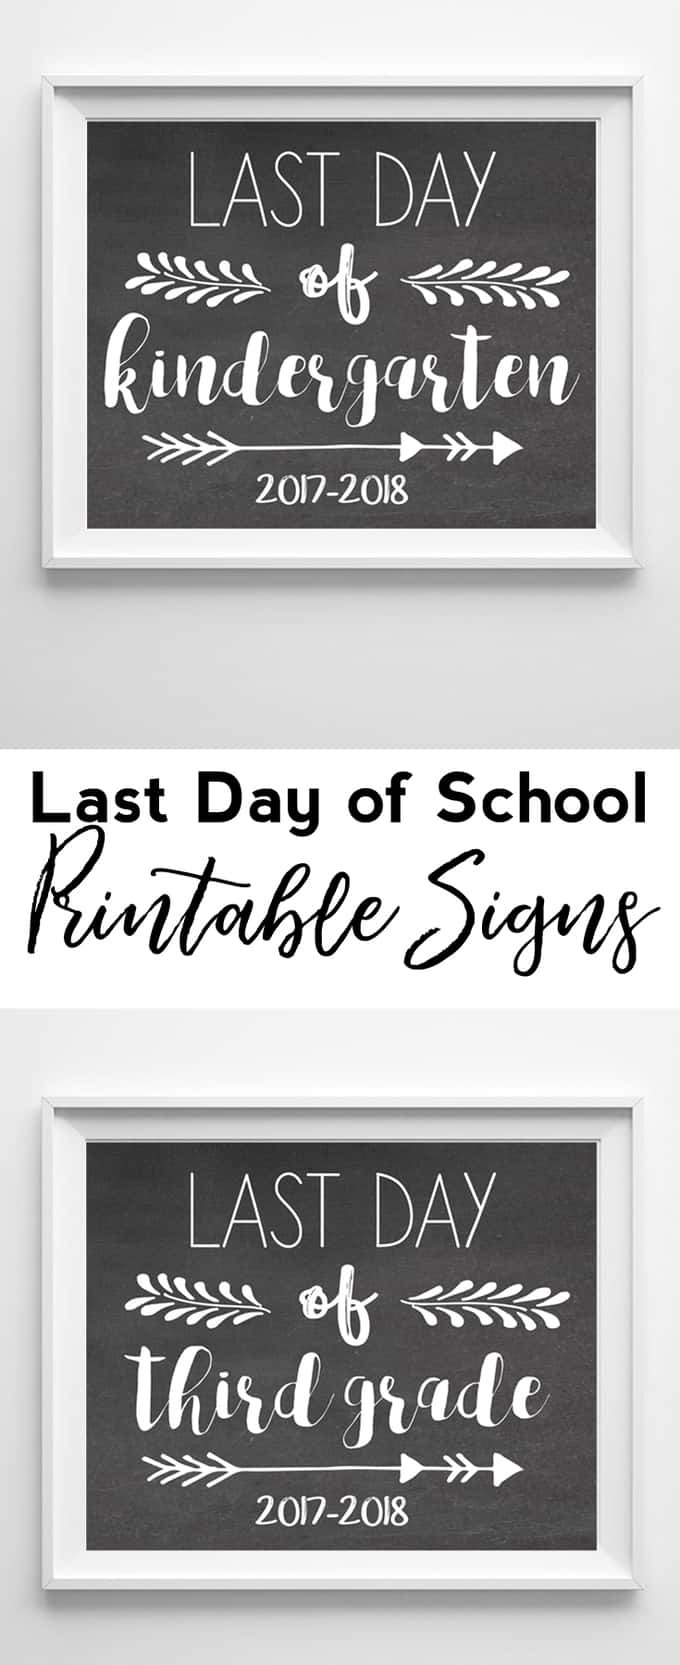 Last Day Of School Printable Signs {2017-2018} - Free Printable Last Day Of School Signs 2017 2018